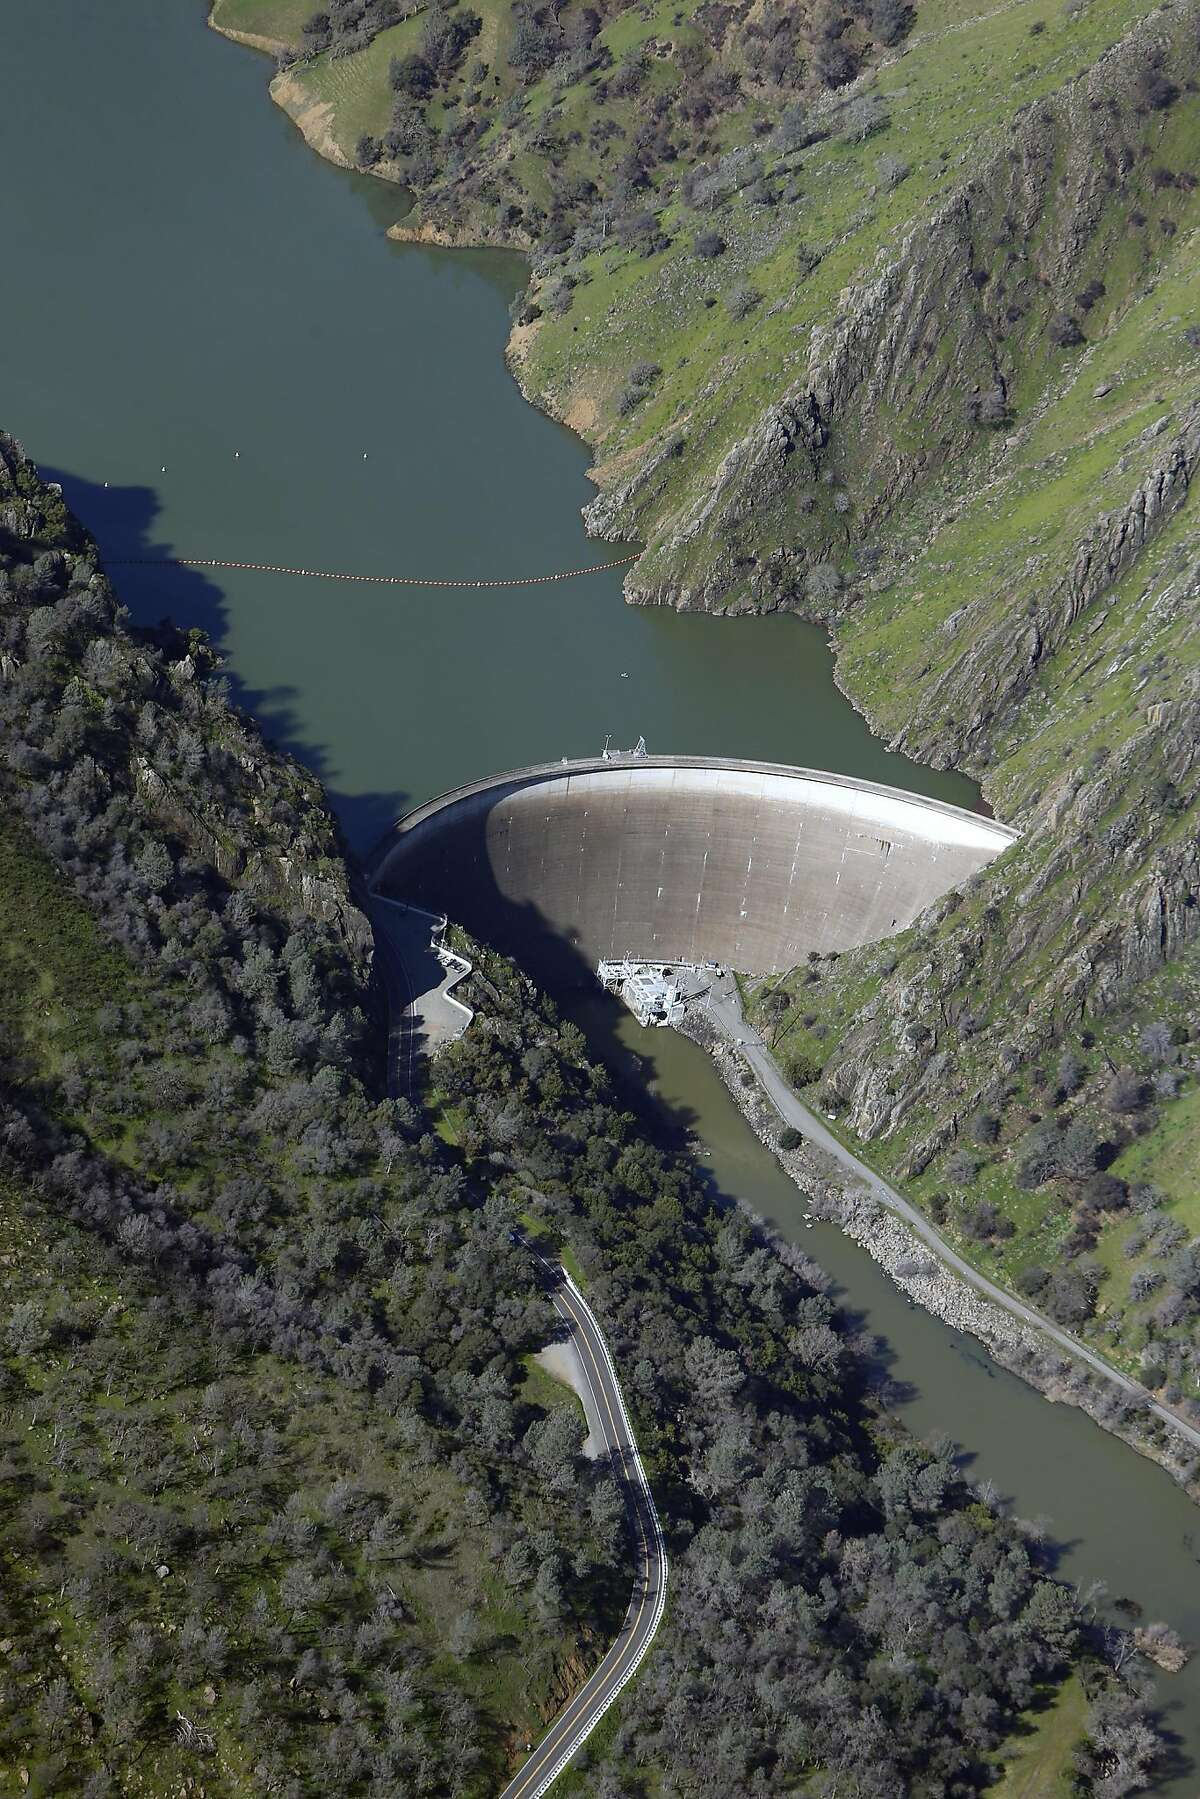 A file photo of Monticello Dam at Lake Berryessa in Napa County, Calif., on Tuesday, February 14, 2017.